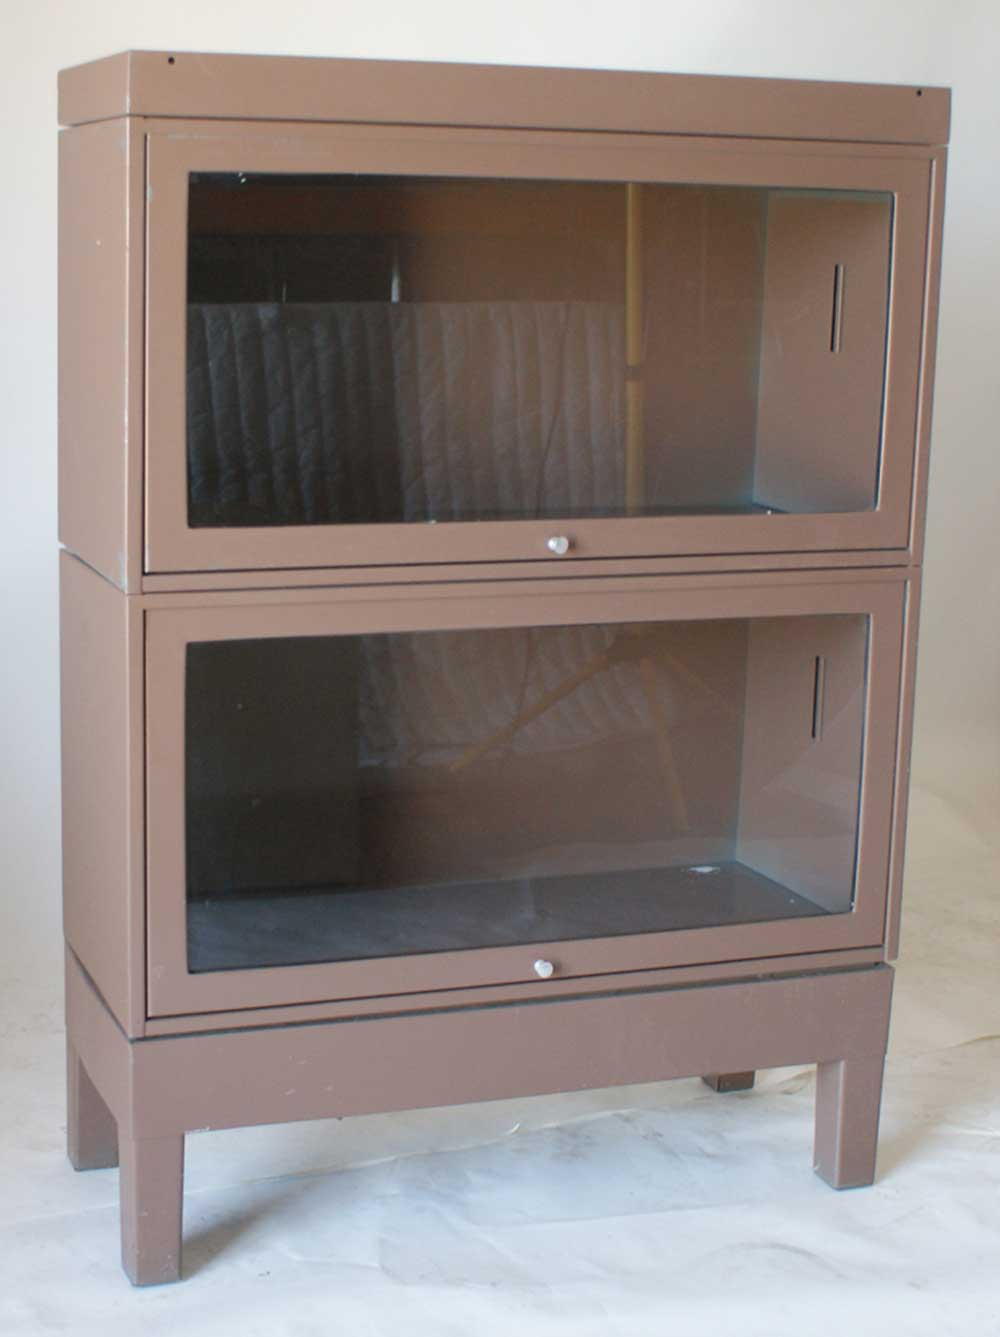 Metal Barrister Bookcase To Improve Room Beauty